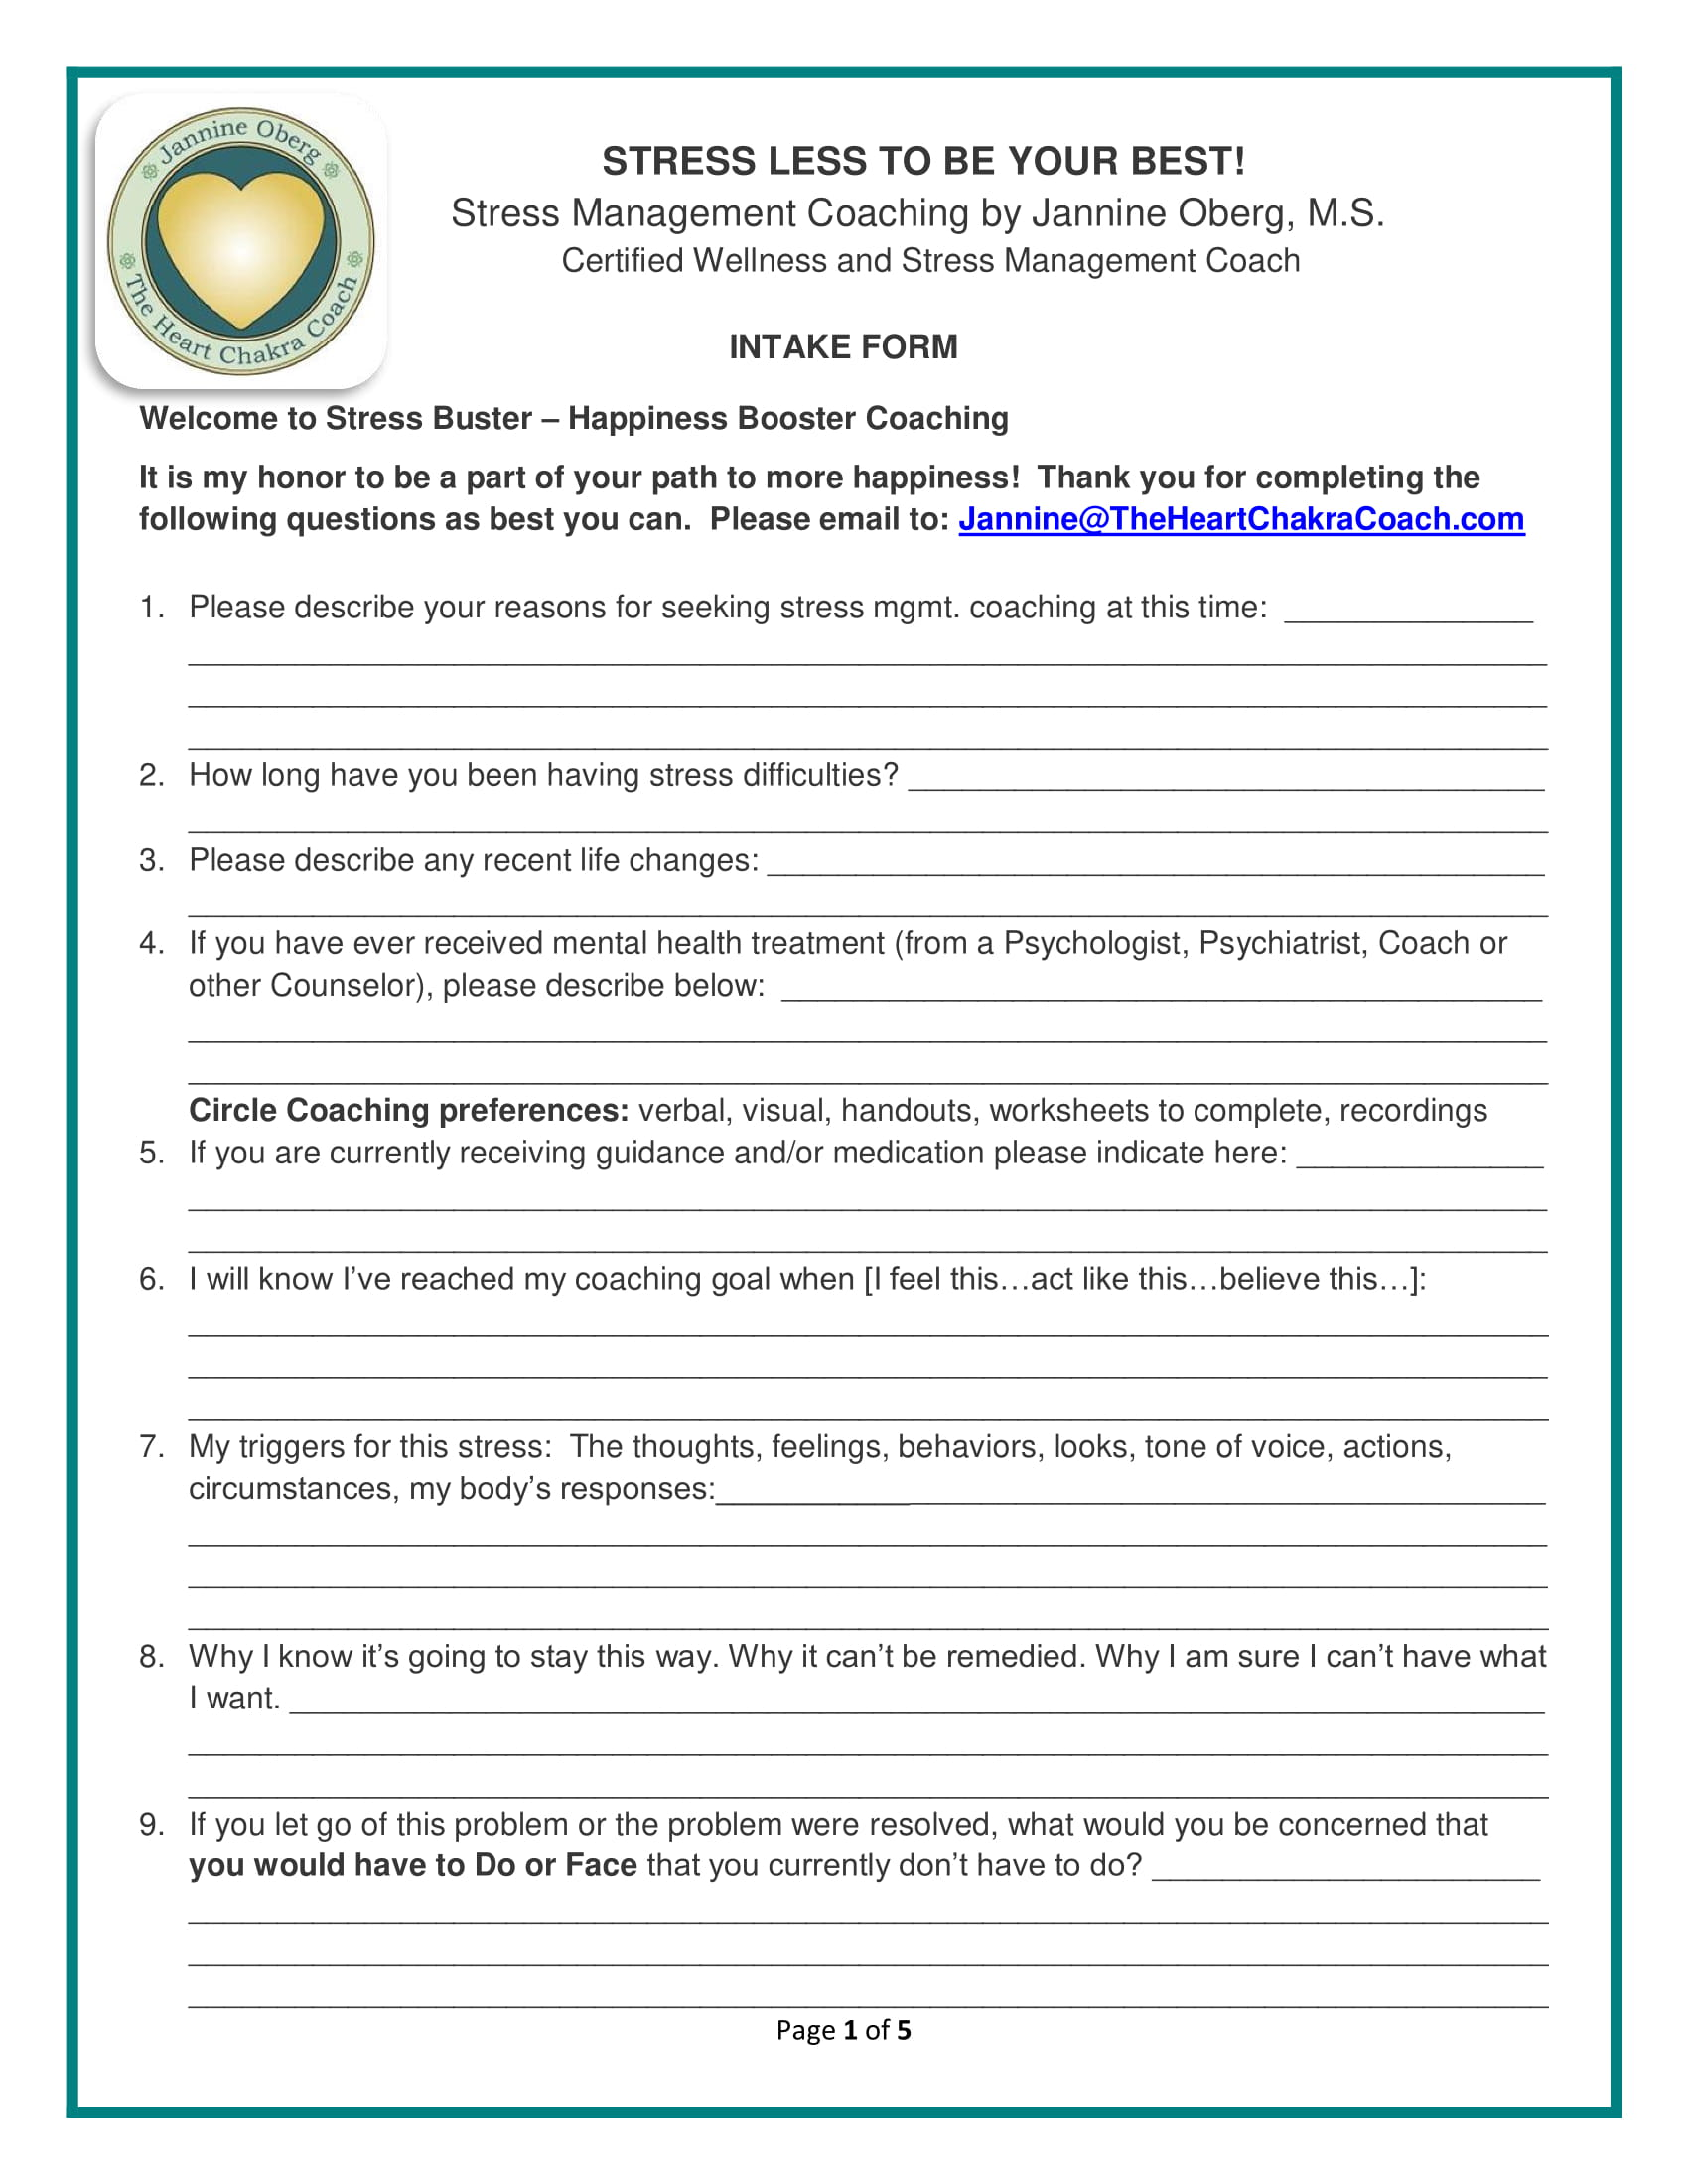 stress coaching intake form 1